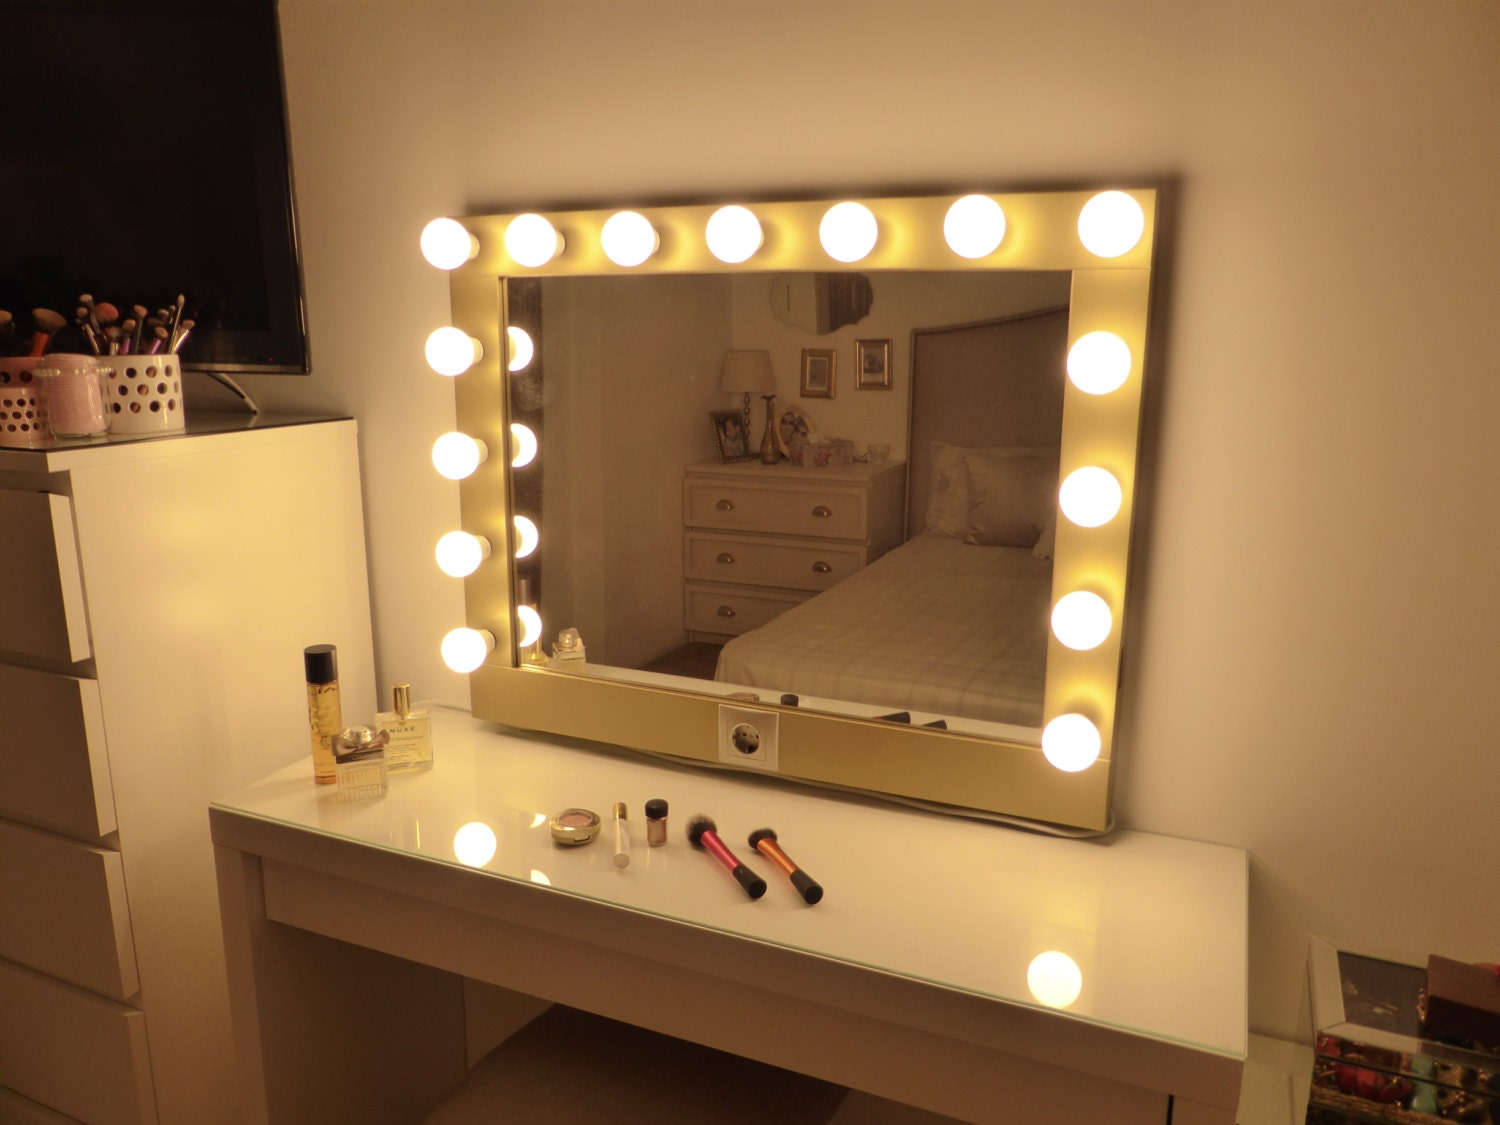 Hollywood lighted vanity mirror-large makeup mirror with